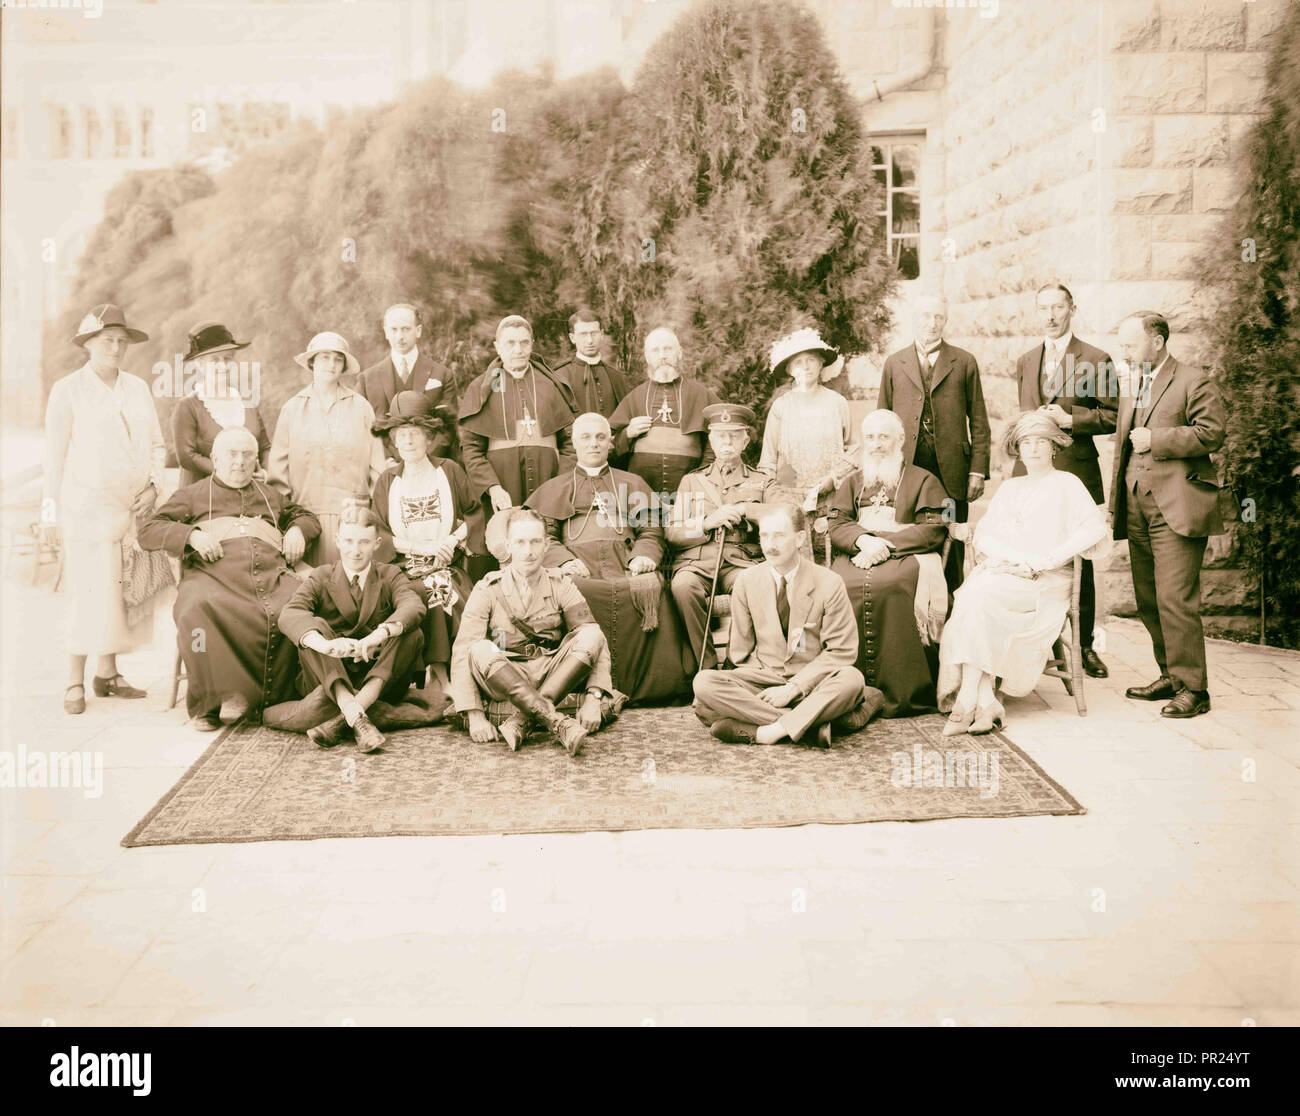 Lord Plumer with archbishop of Naples & Latin Patriarch, with larger group, Aug. 11, 1926. 1926, Jerusalem, Israel - Stock Image